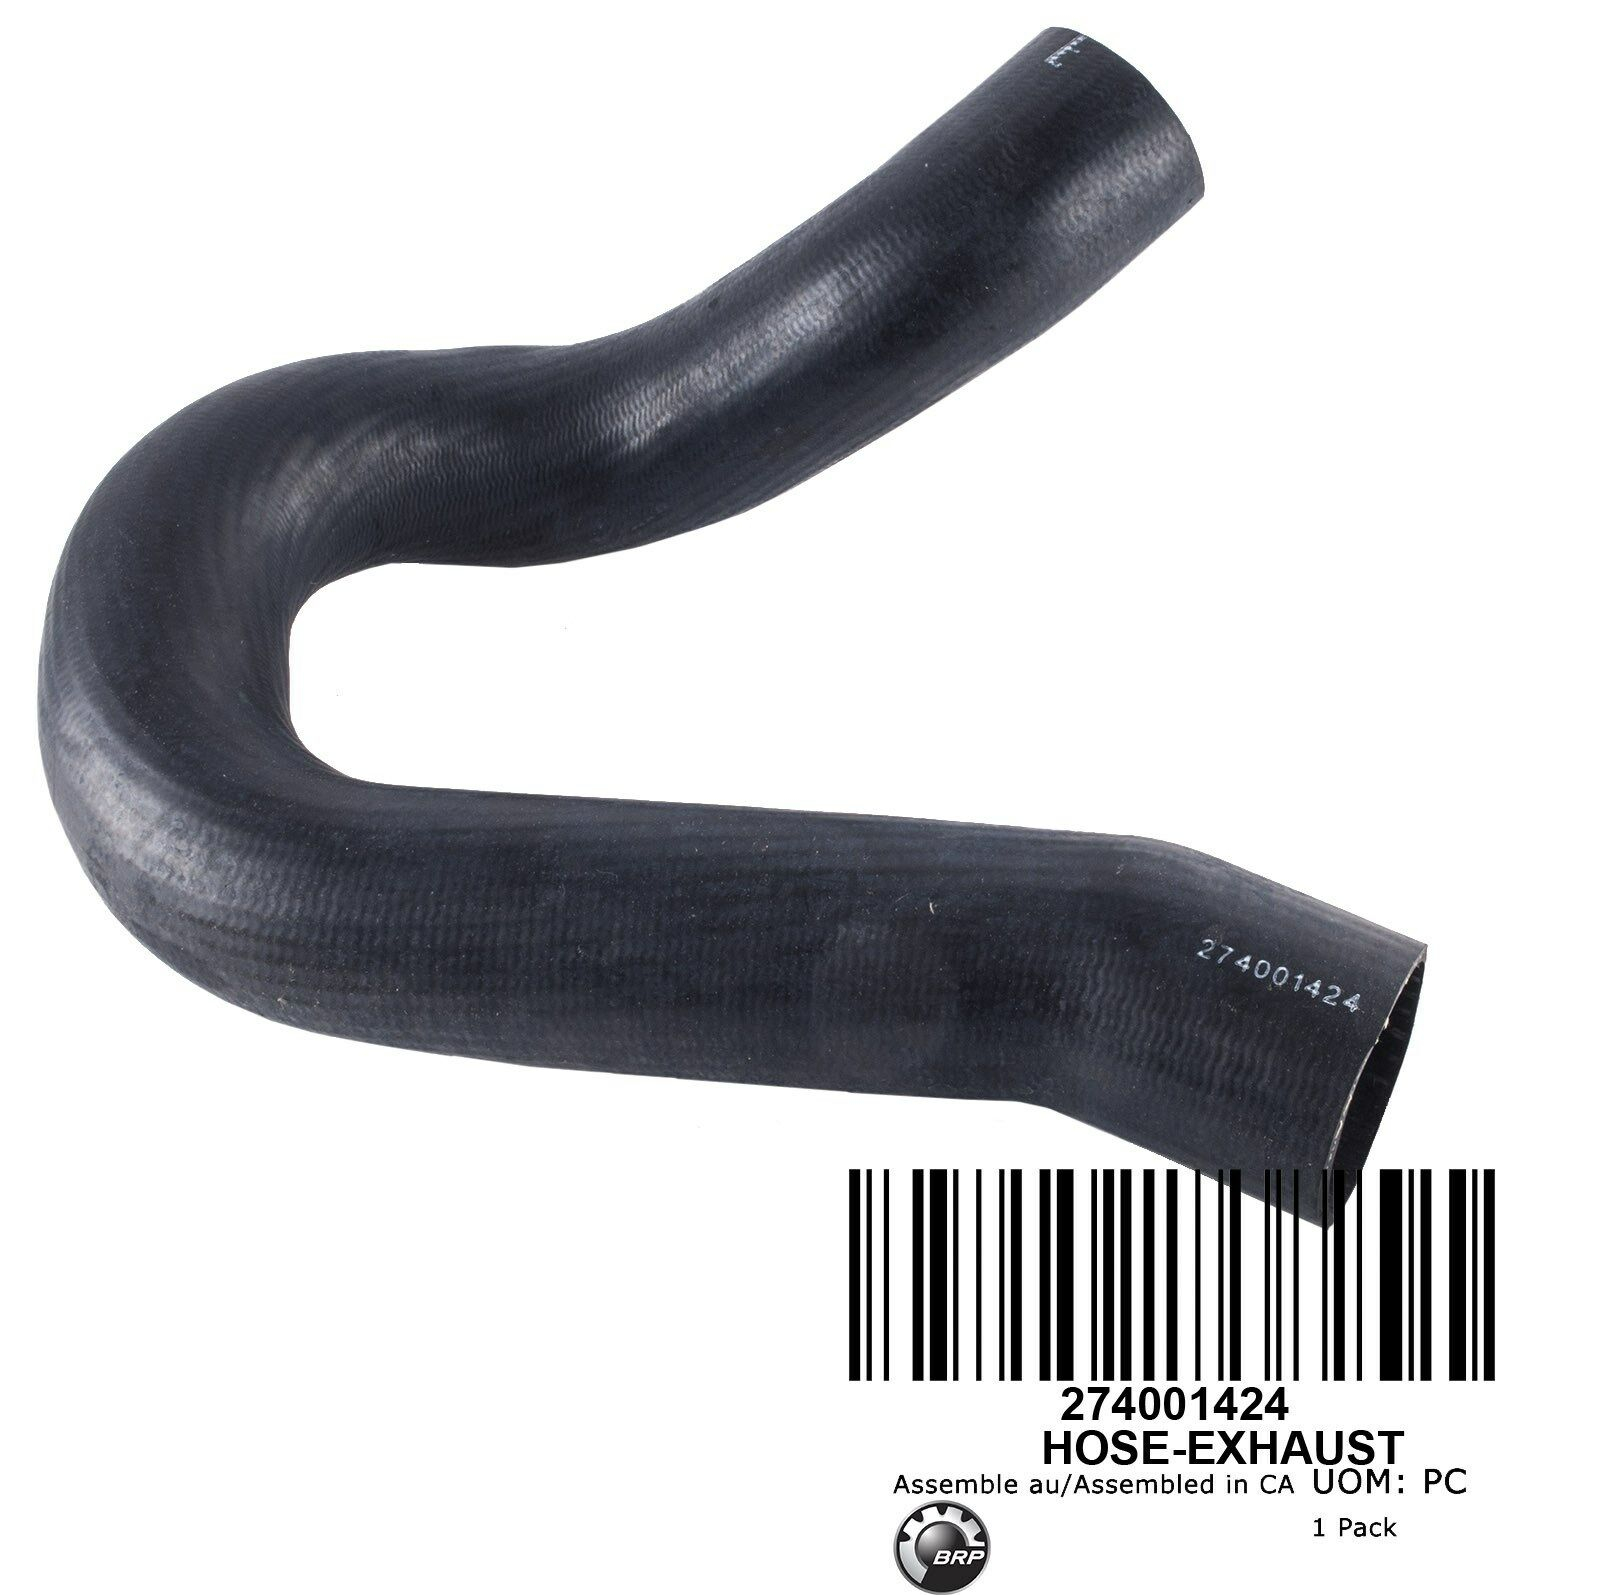 FRONT EXHAUST HOSE Sea-Doo